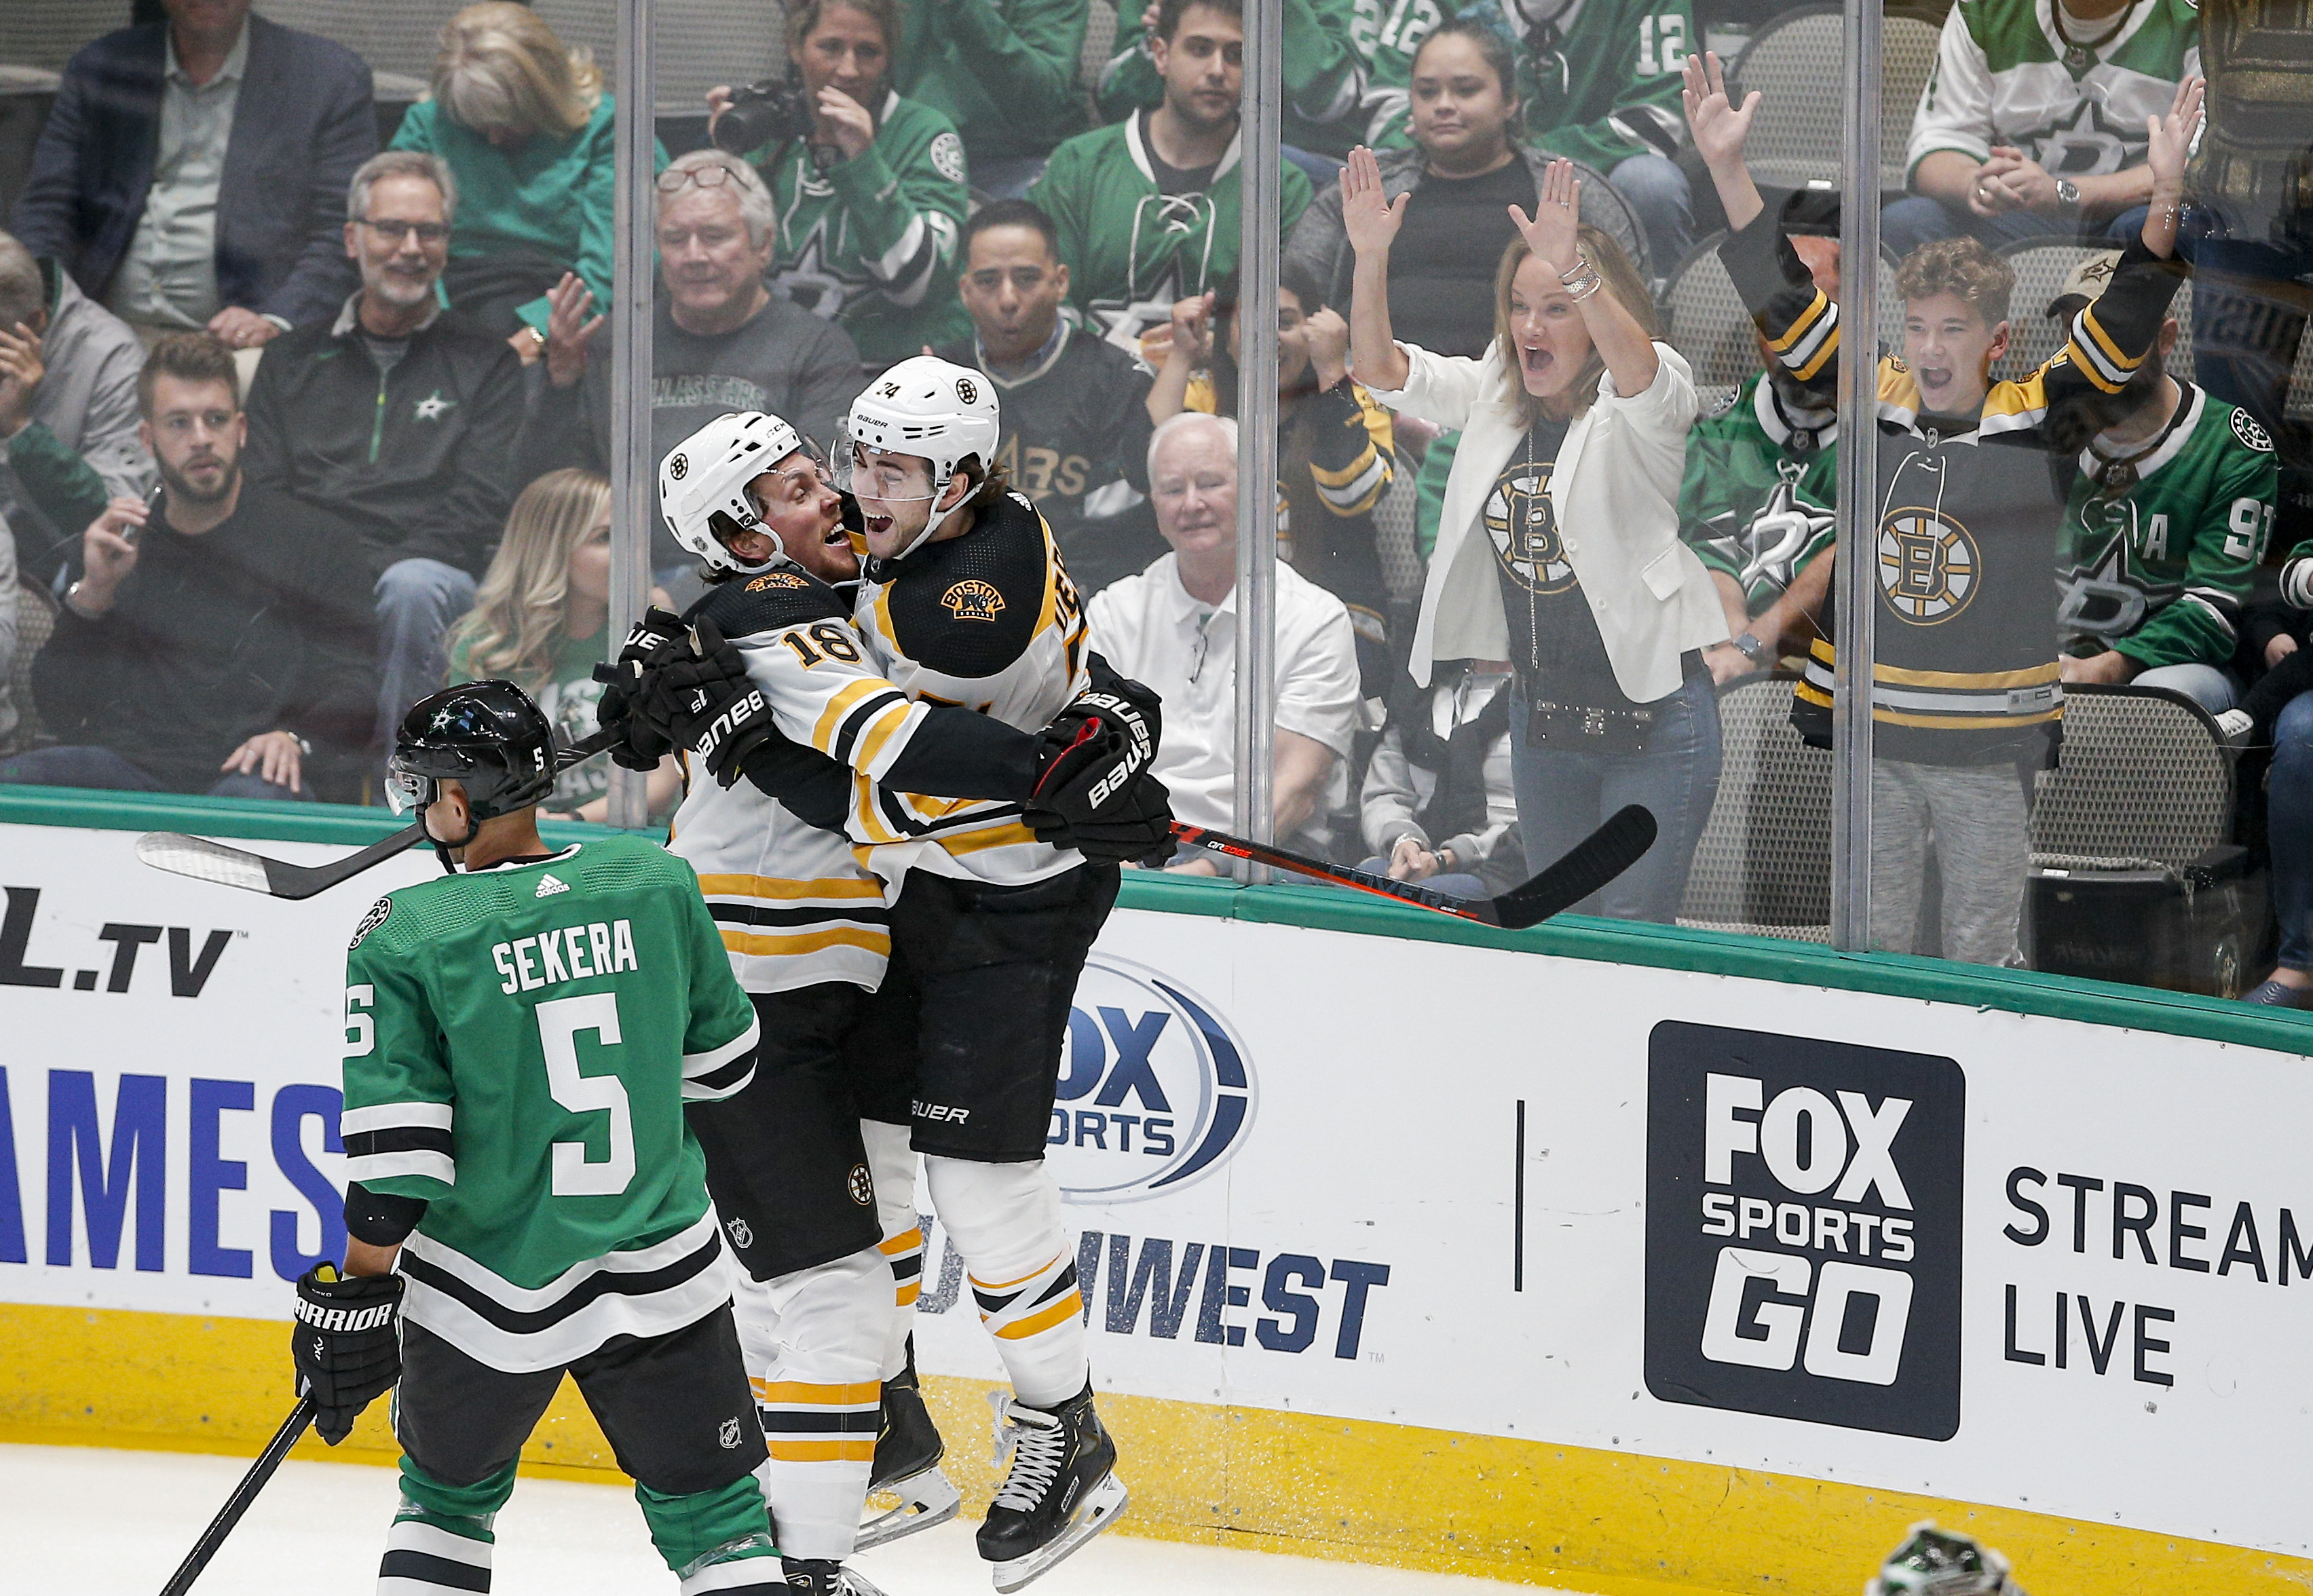 Ritchie beats former team on 1st shift, Bruins top Stars 2-1